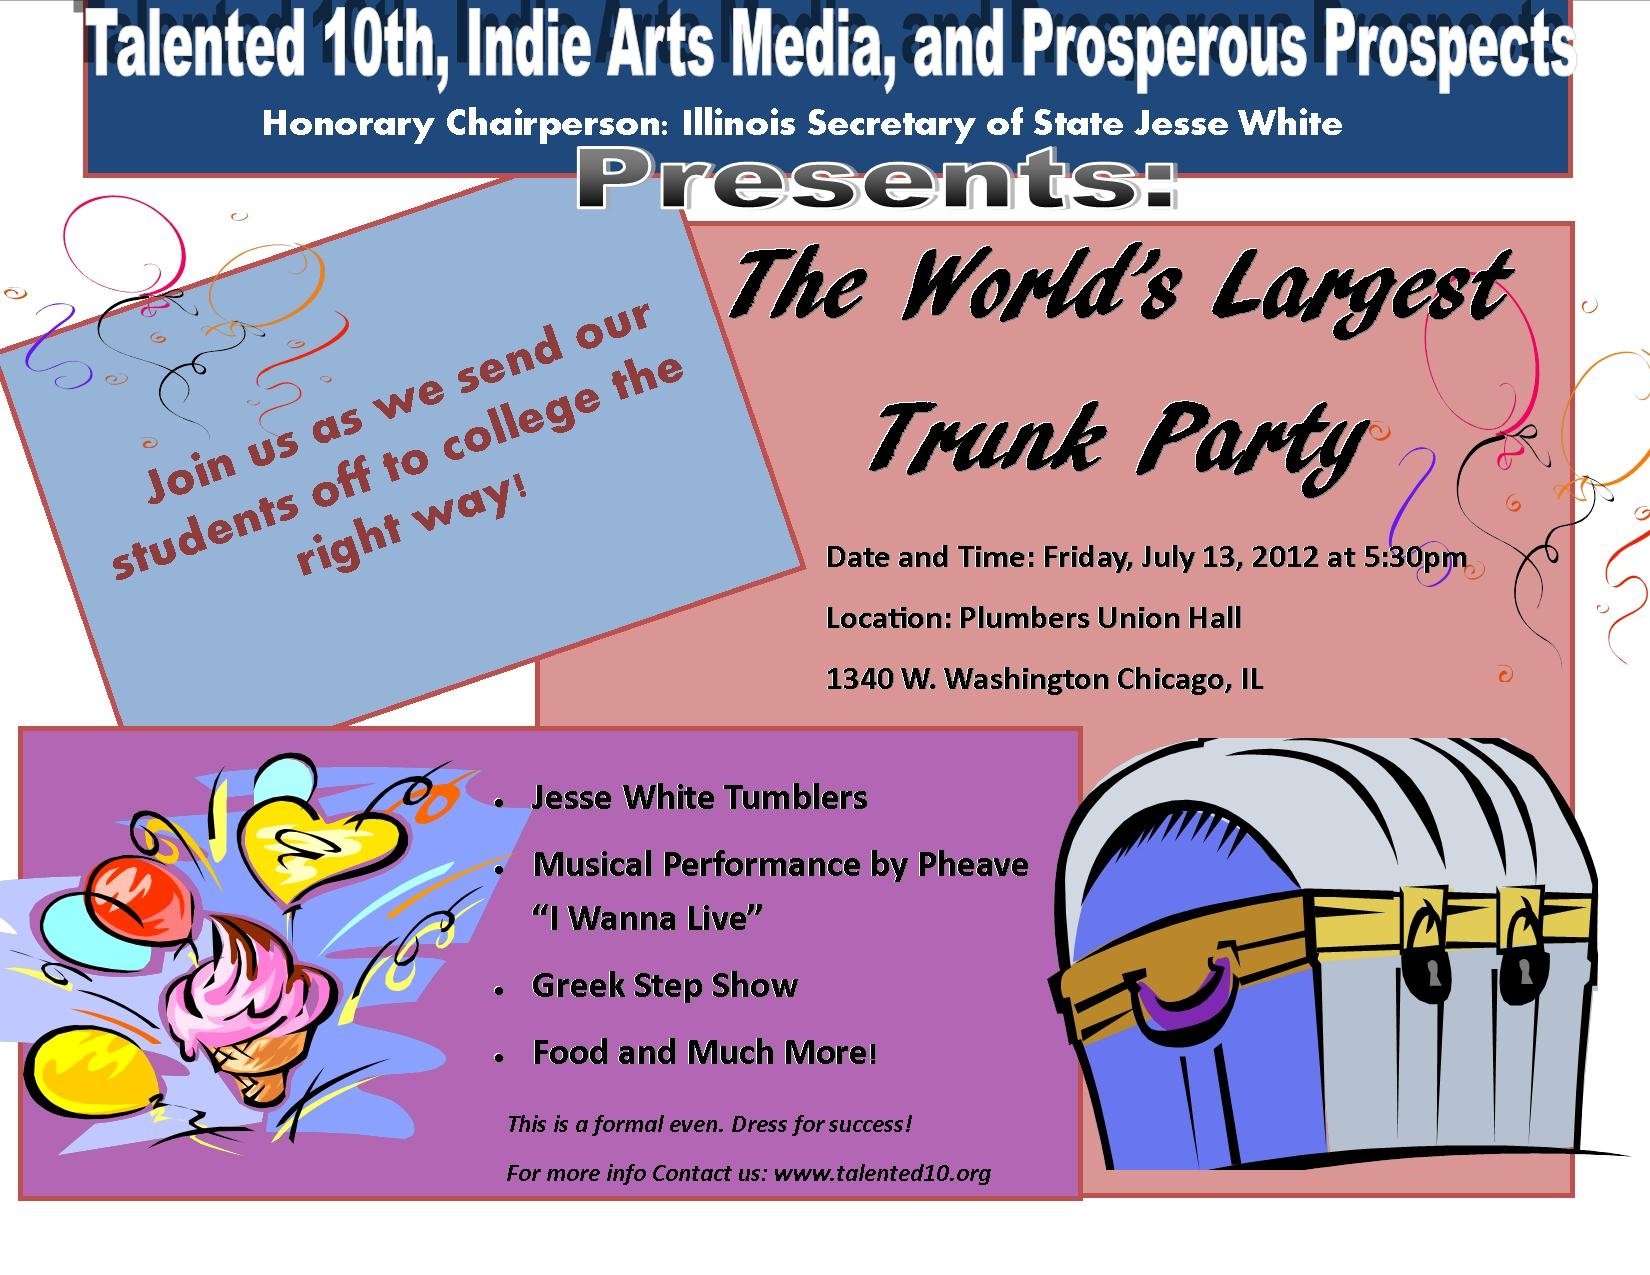 Talented 10ths Worlds Largest Trunk Party Shorty Your Chicago